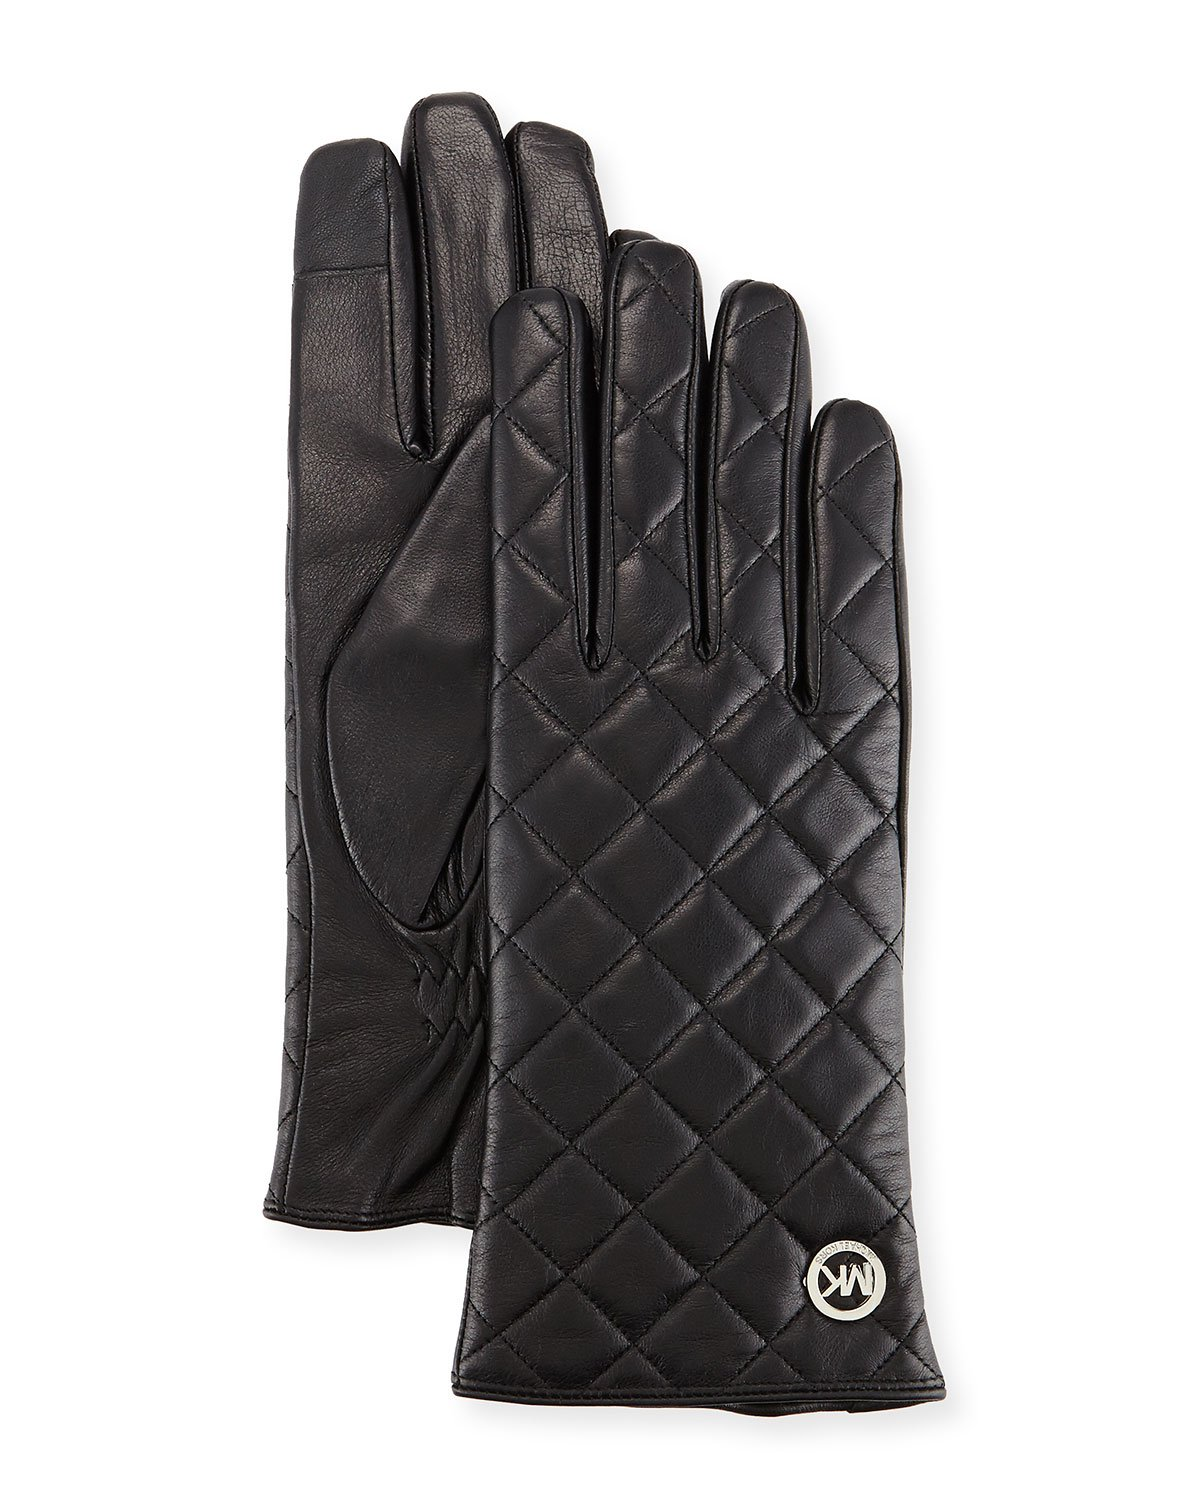 Michael Kors Womens Quilted Leather Tech Gloves Black (Medium)